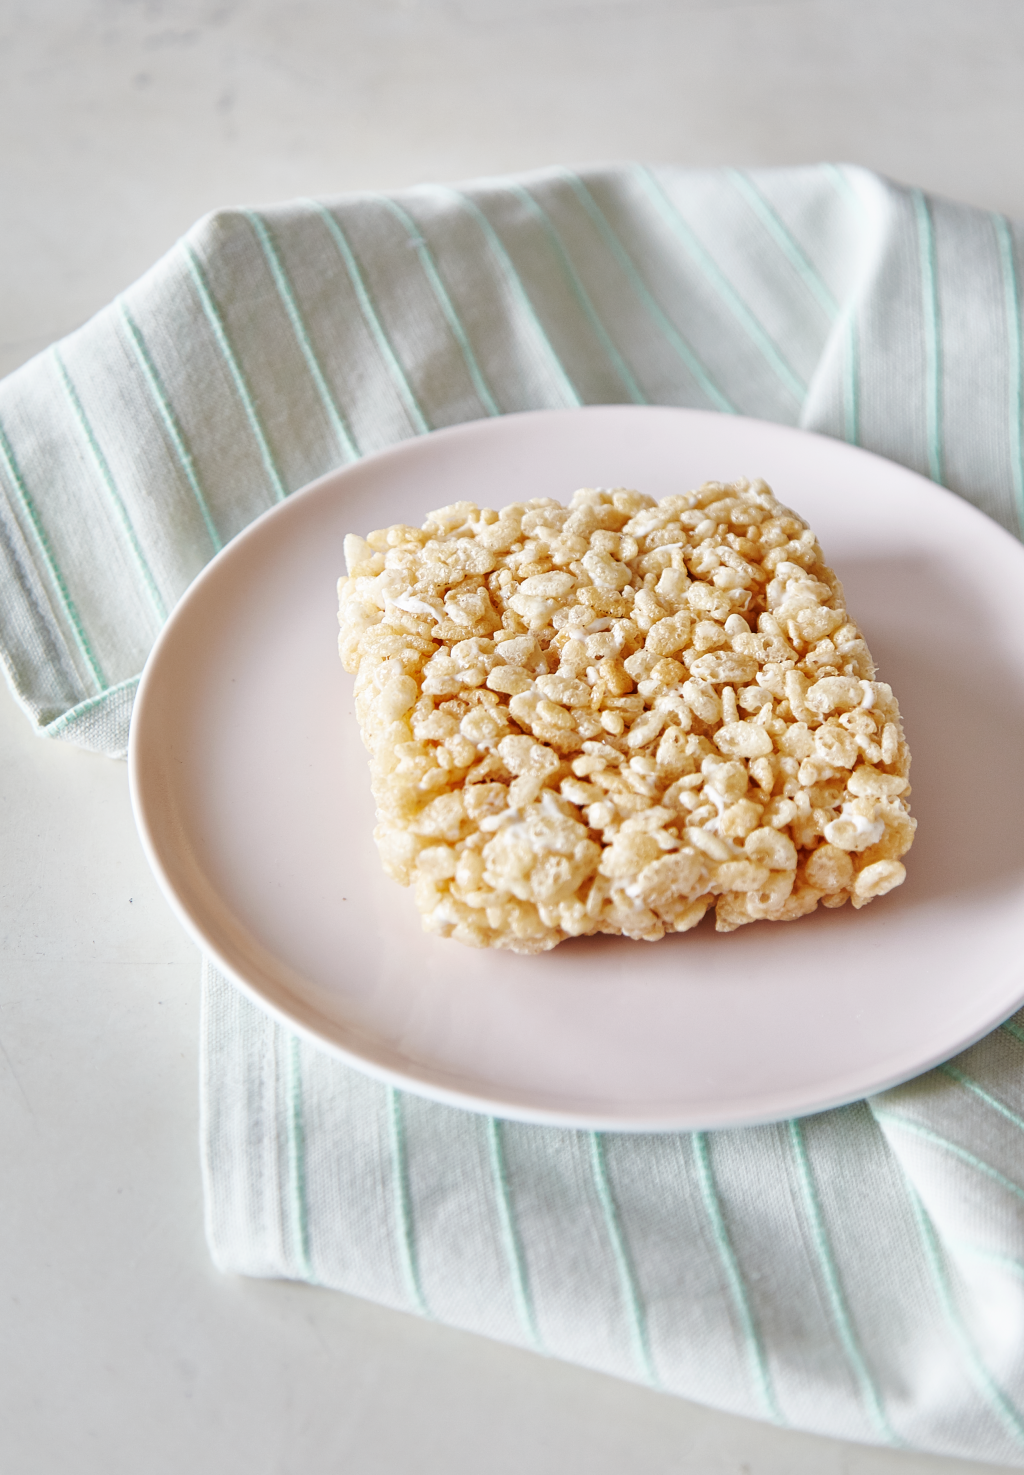 How To Make a Single Rice Krispies Treat